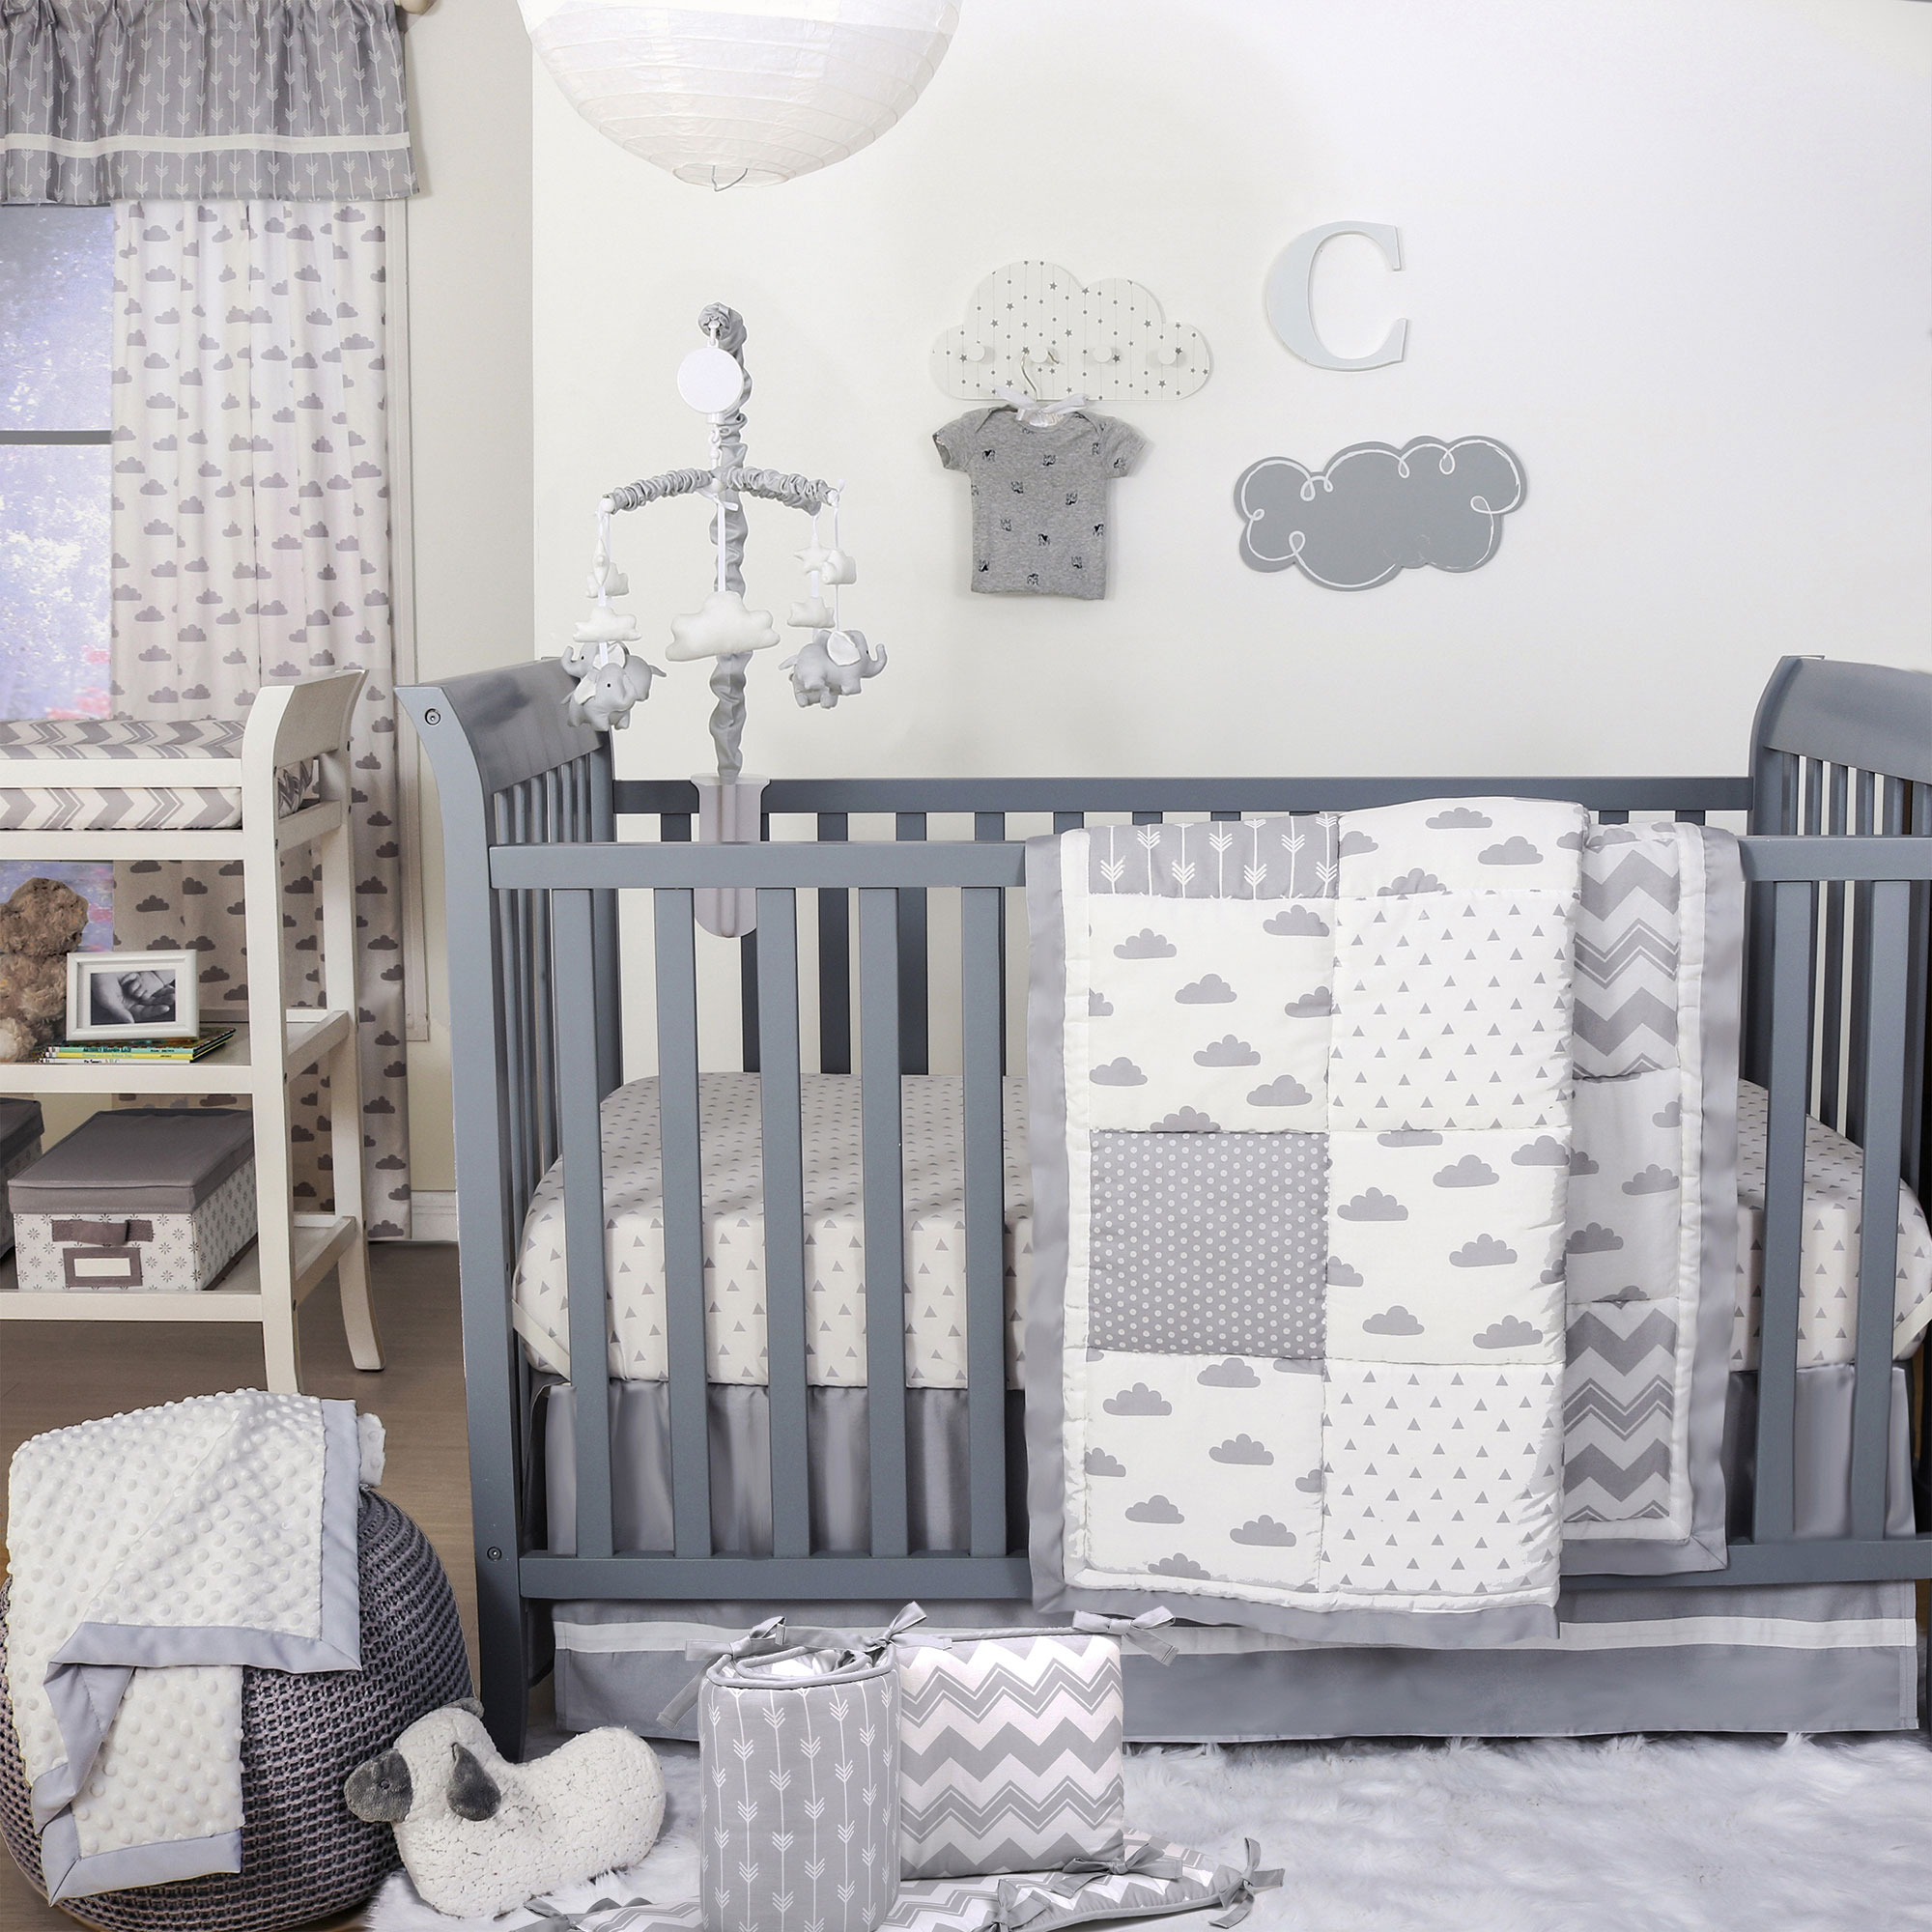 The Peanut Shell 5 Piece Baby Crib Bedding Set - Grey Clouds, Confetti Dots,and Zig Zag Patchwork - 100% Cotton Quilt, Bumper, Dust Ruffle, Fitted Sheet, and Mobile